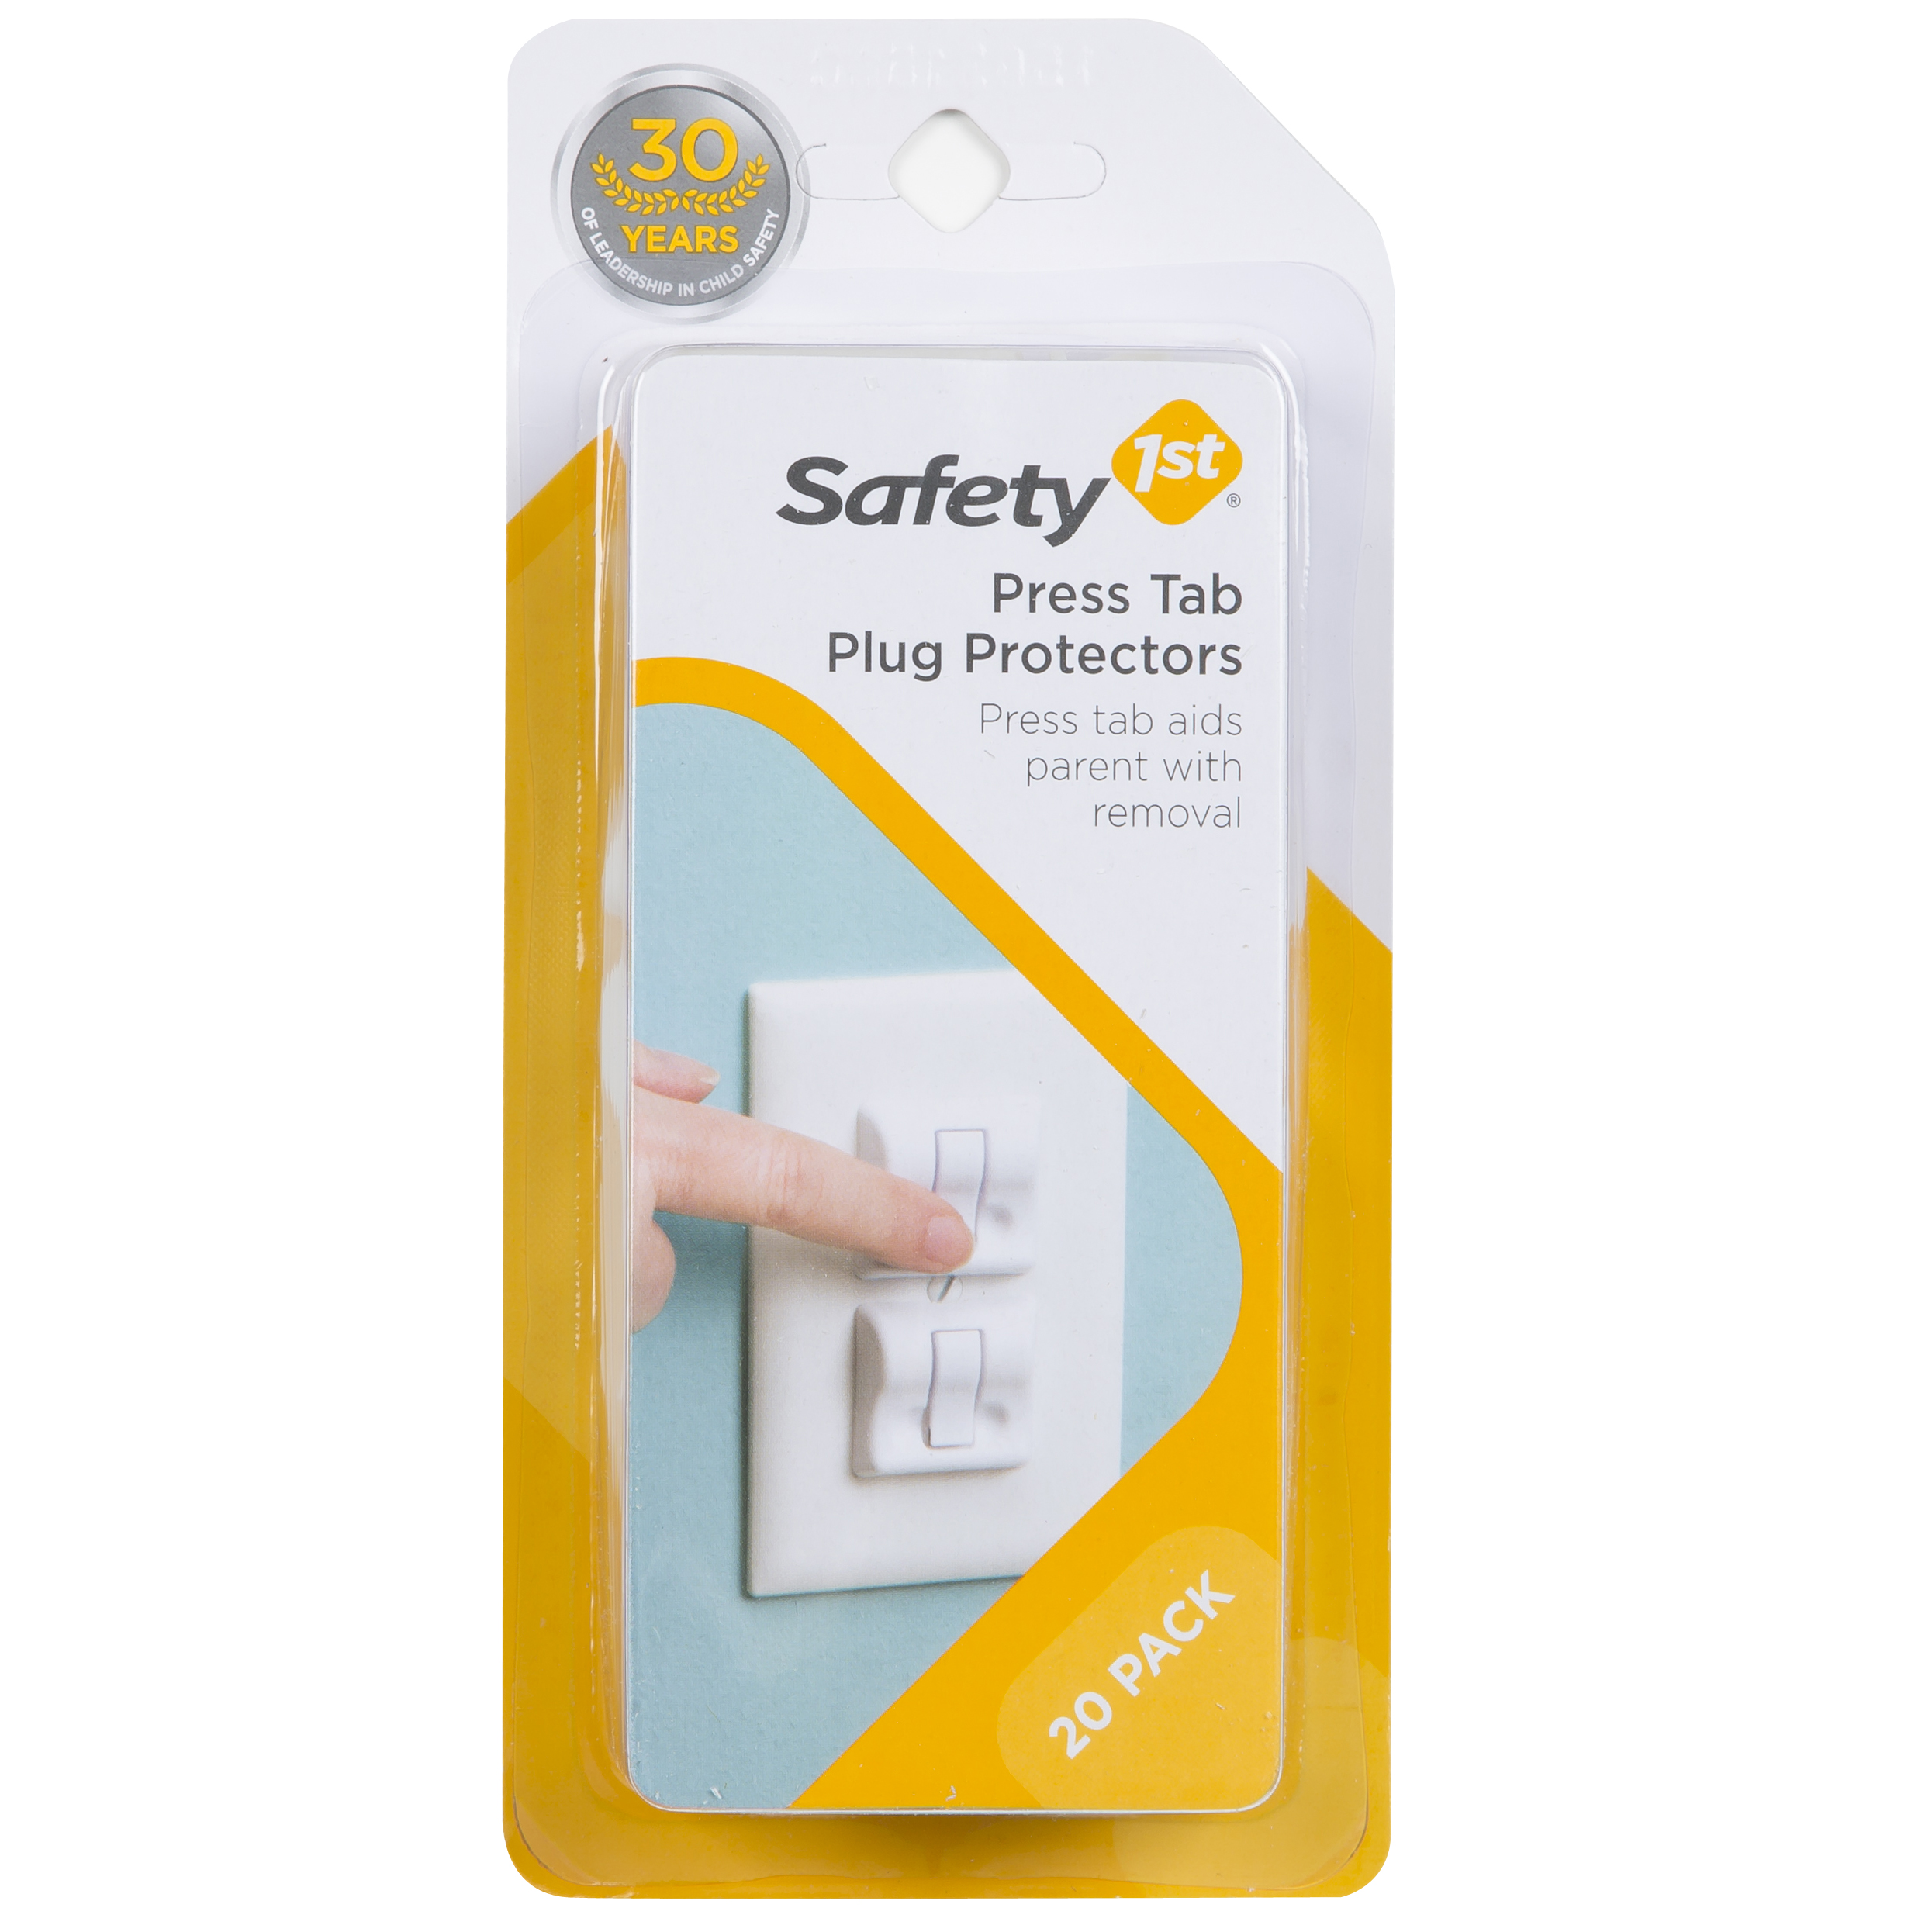 Safety 1ˢᵗ Press-Tab Plug Protectors, White